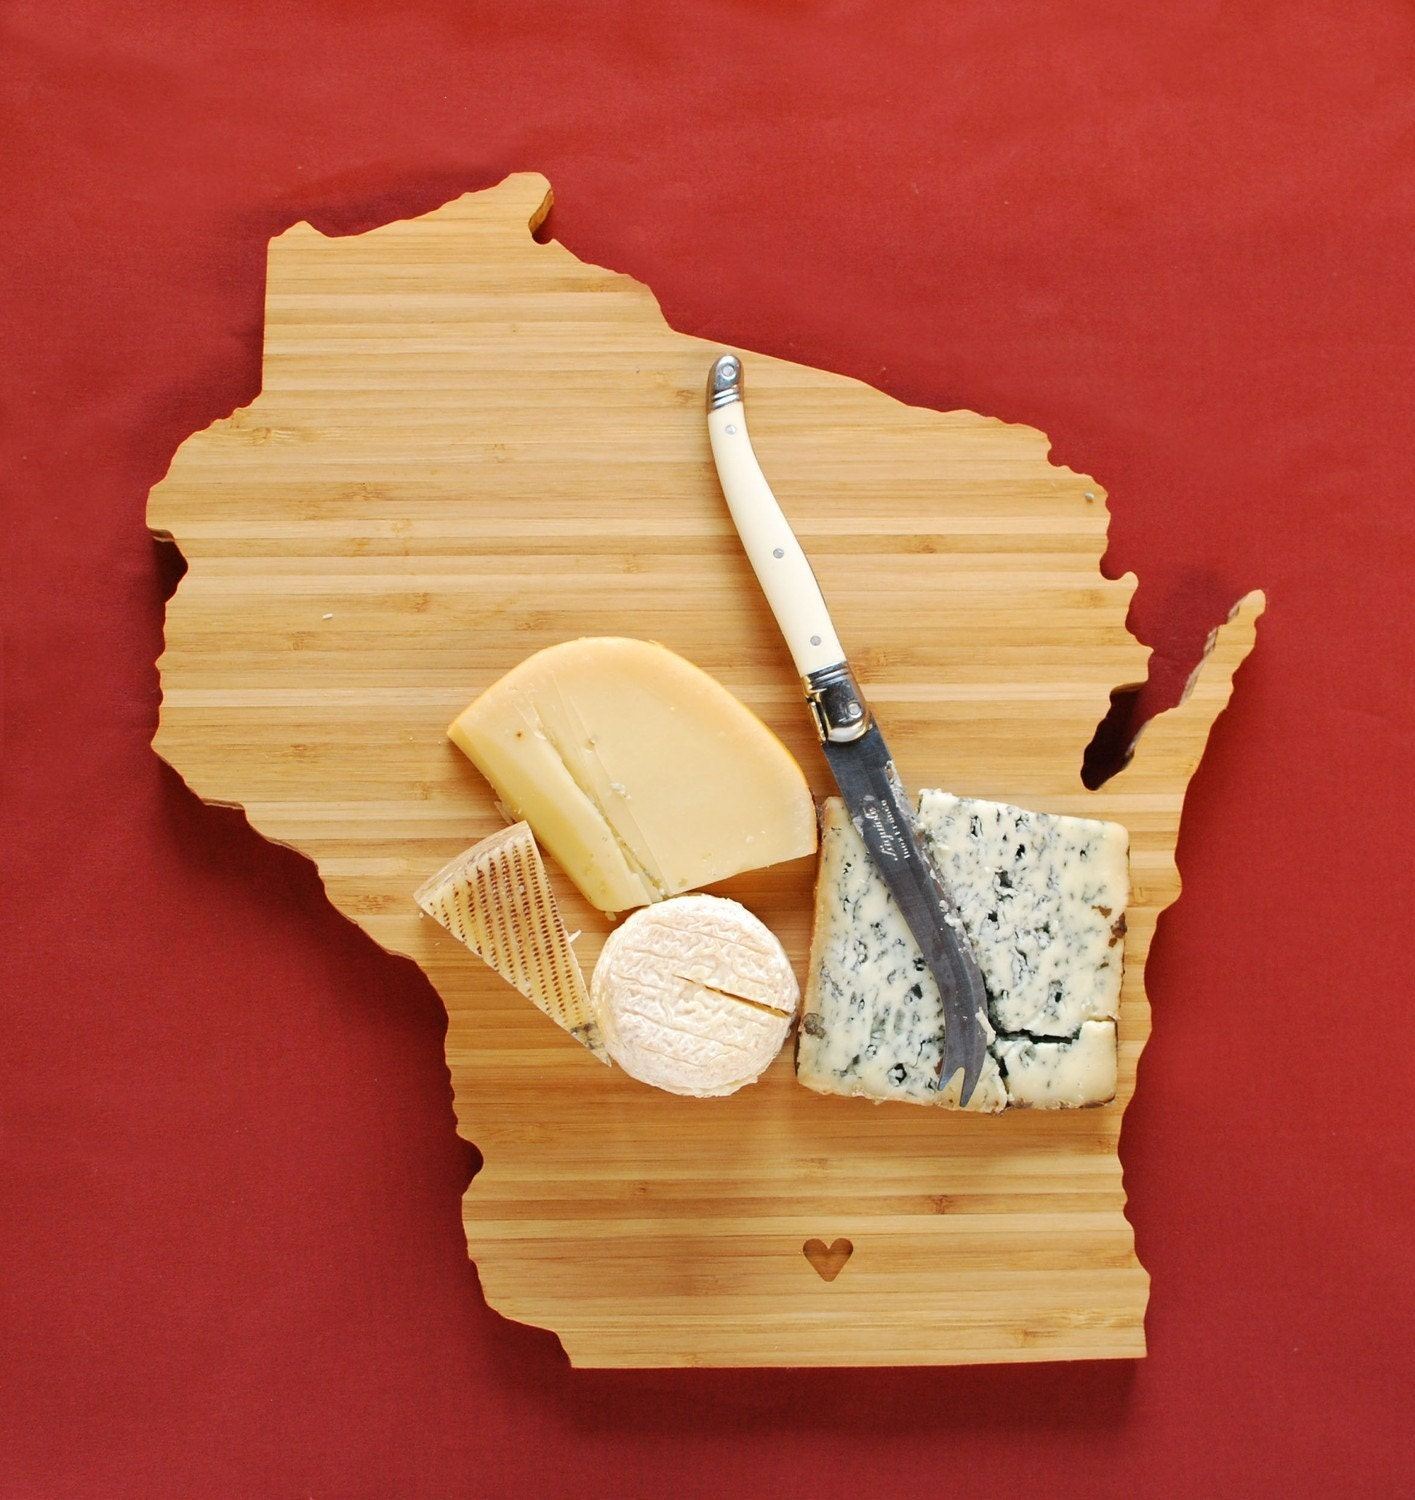 aheirloom 39 s wisconsin state shaped cutting board by aheirloom. Black Bedroom Furniture Sets. Home Design Ideas